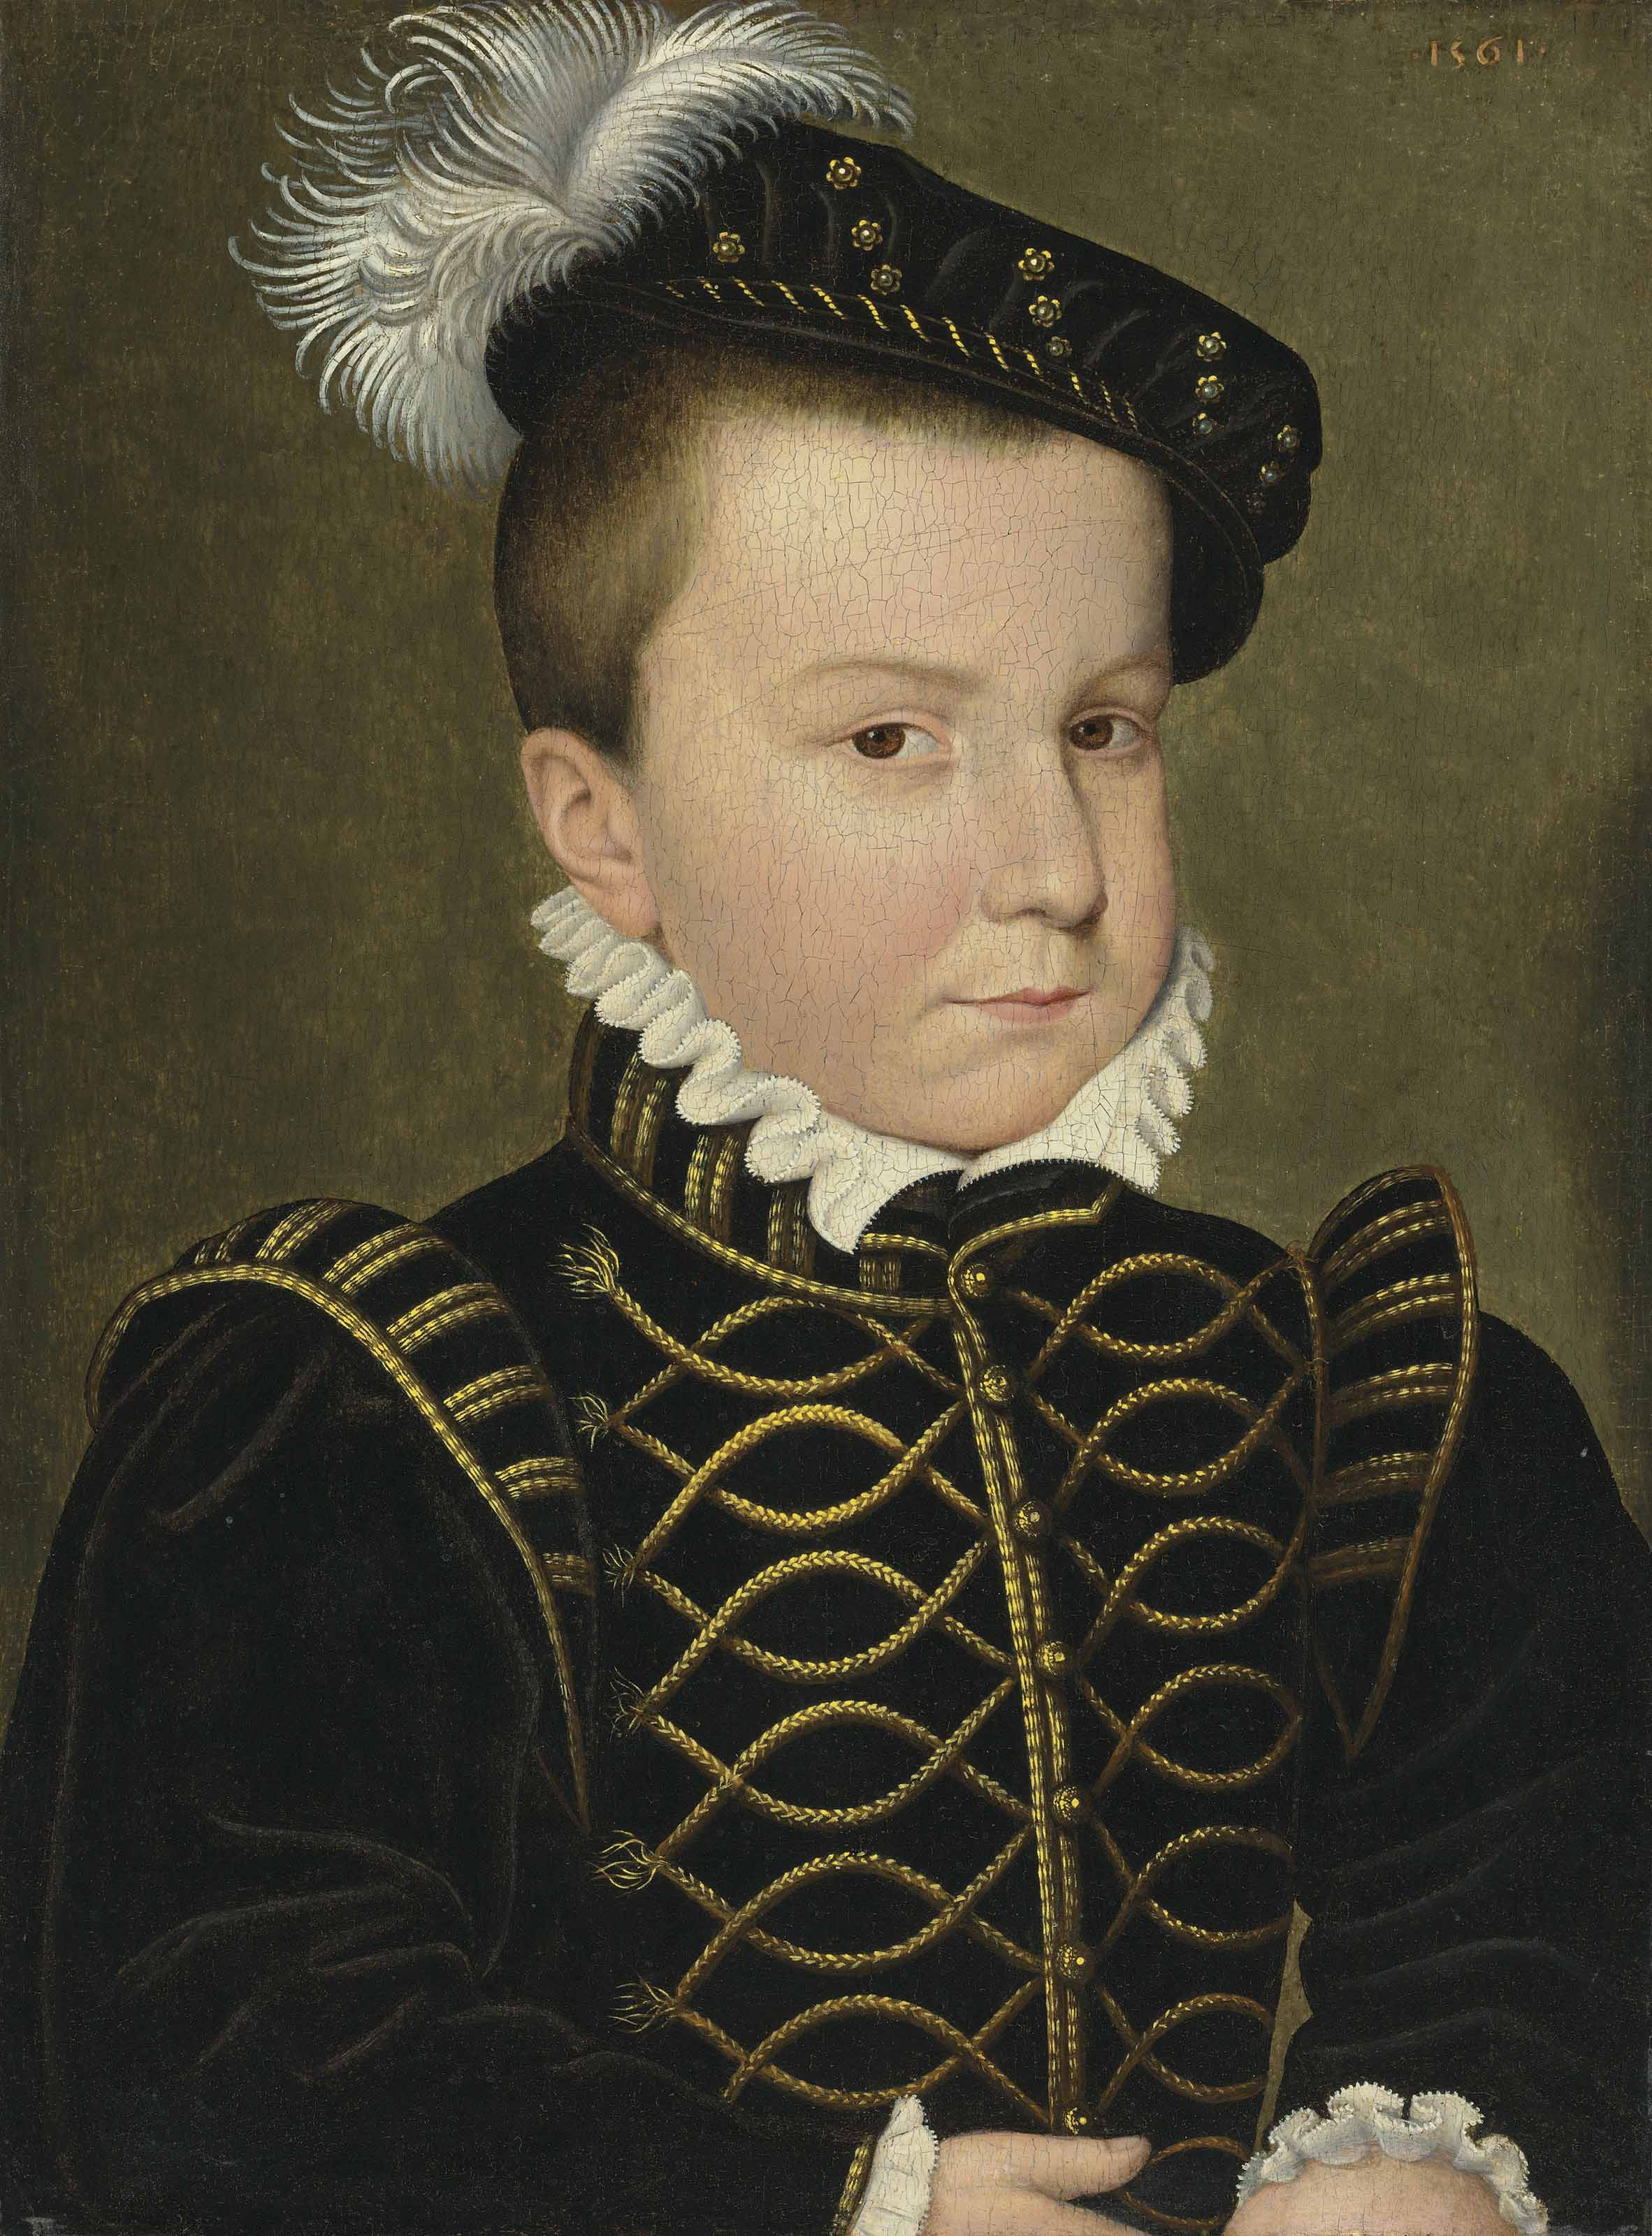 Portrait of Hercule-François, Duke of Alençon and of Anjou (1555-1584)